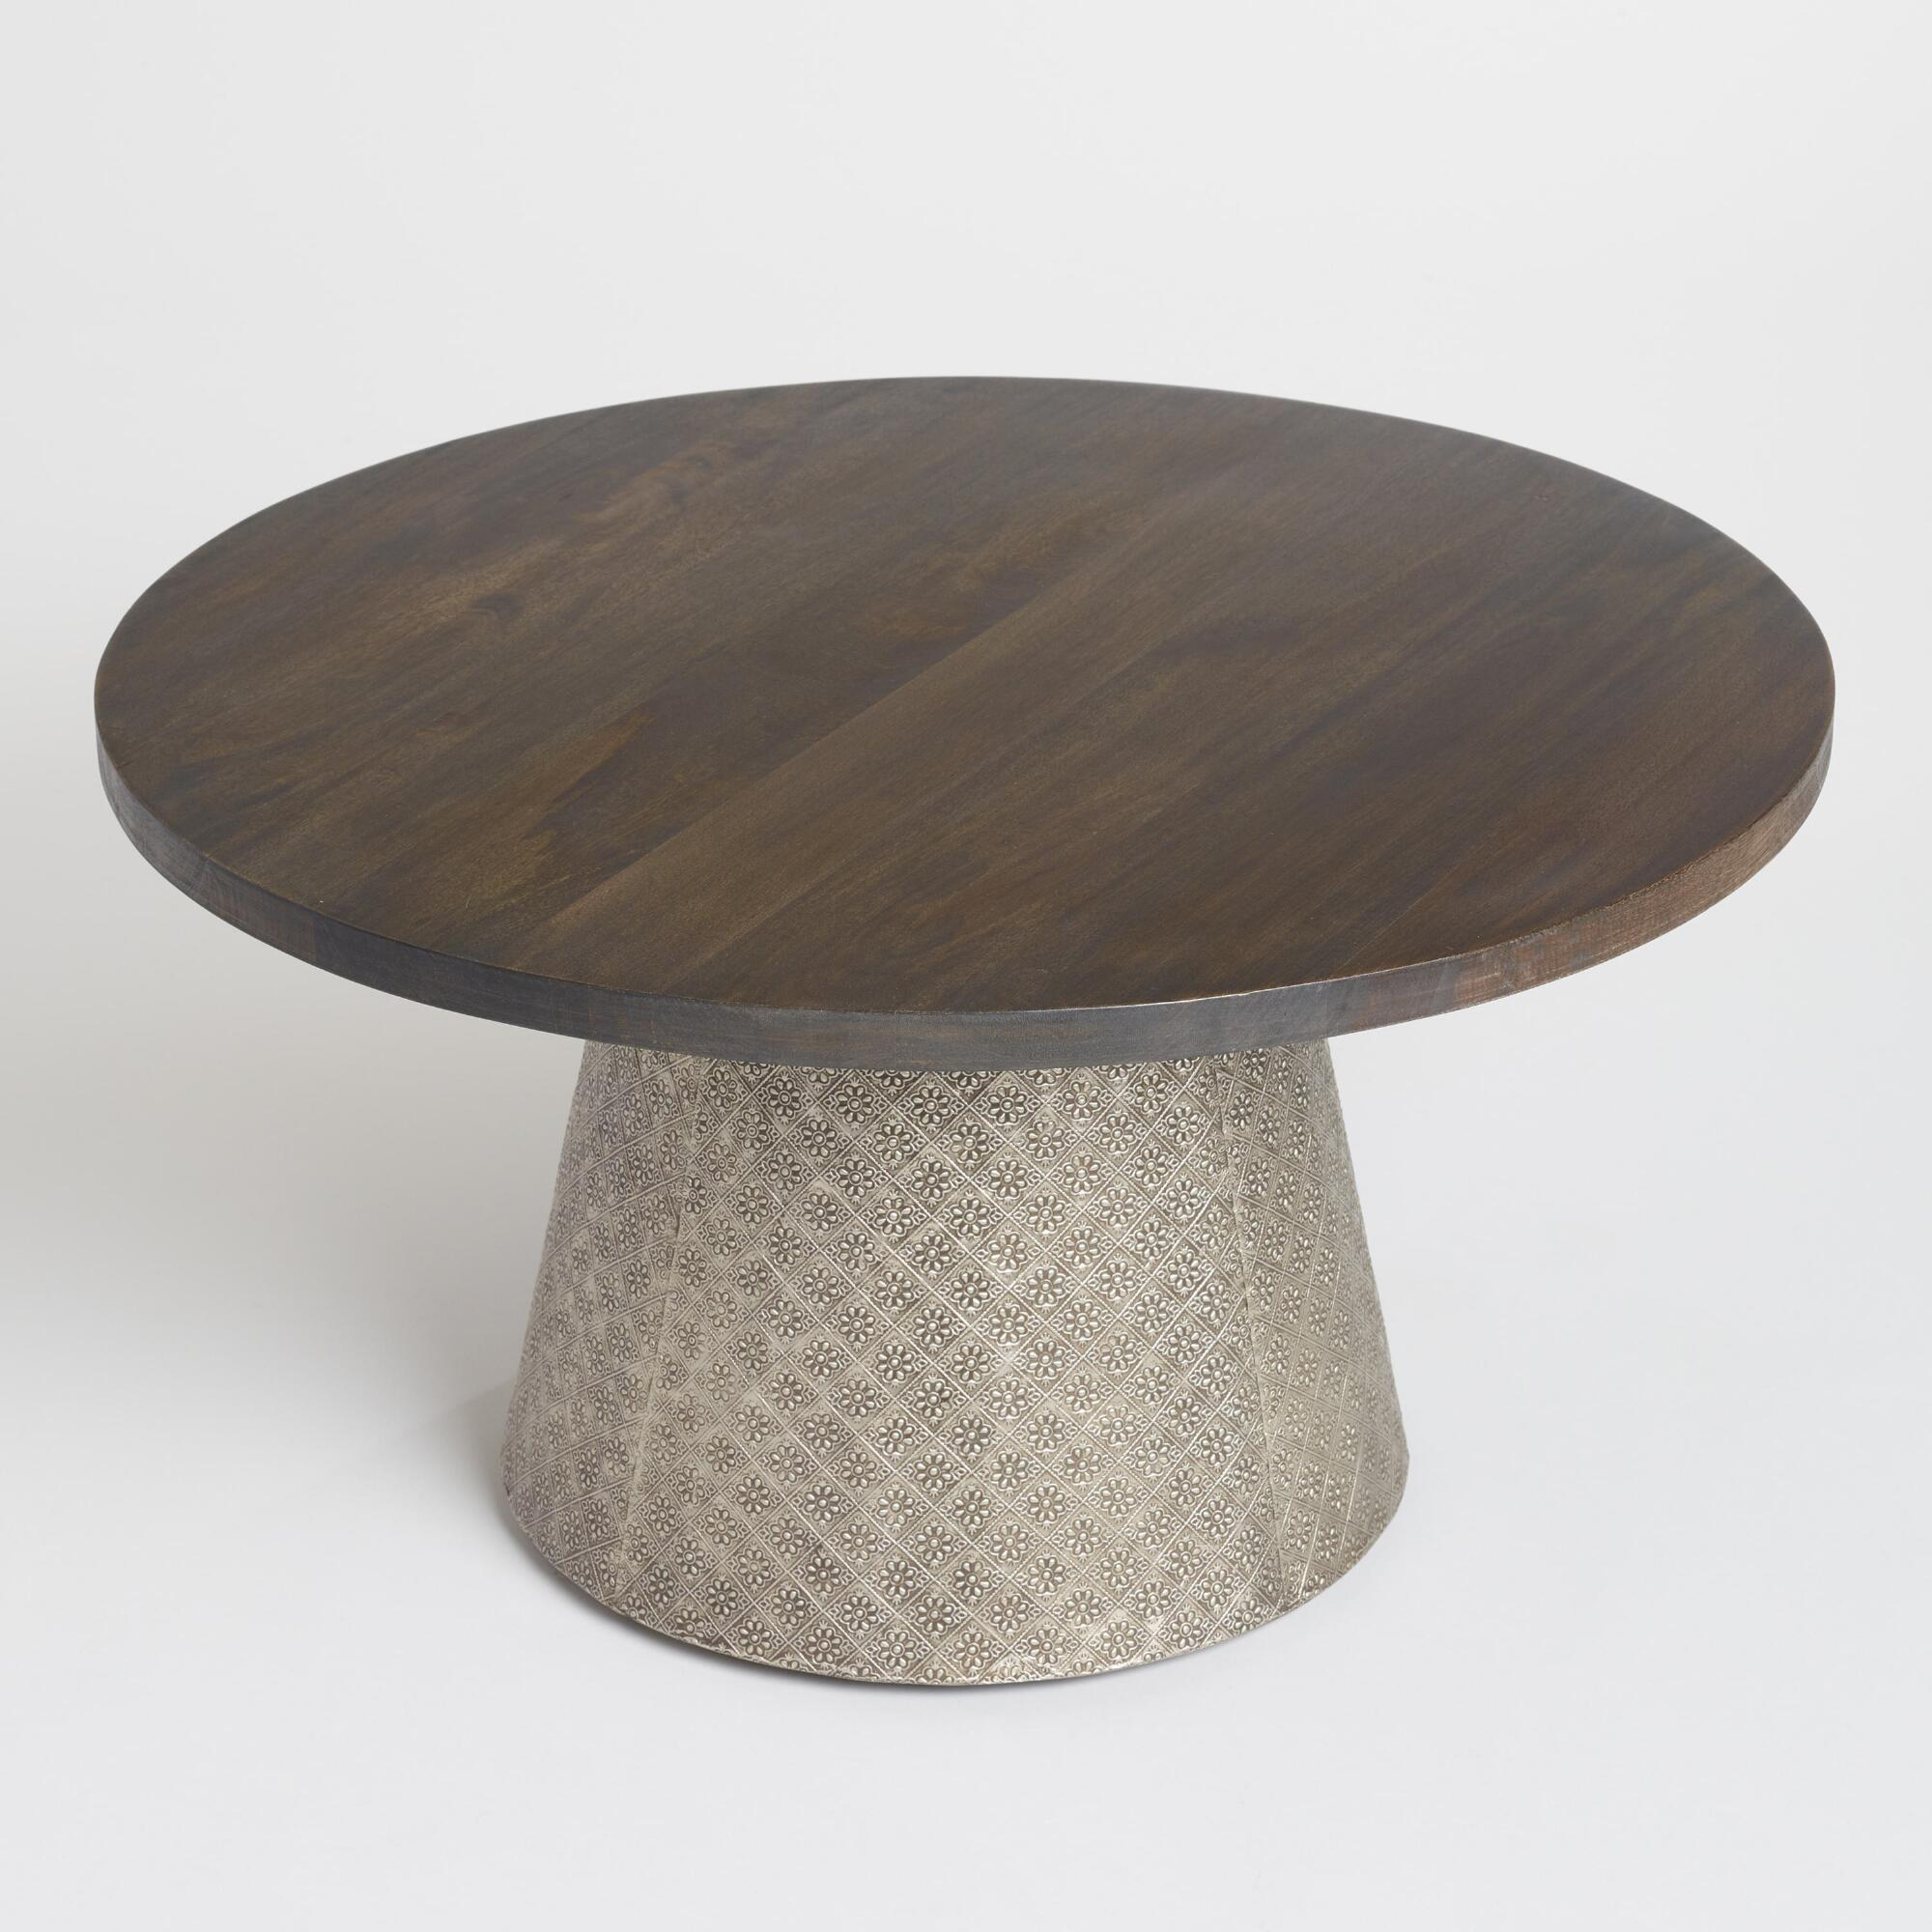 coffee tables end accent world market iipsrv fcgi round teak table wood and embossed metal kiran bedside set threshold mohawk home rugs for small rooms homebase garden chairs lamp